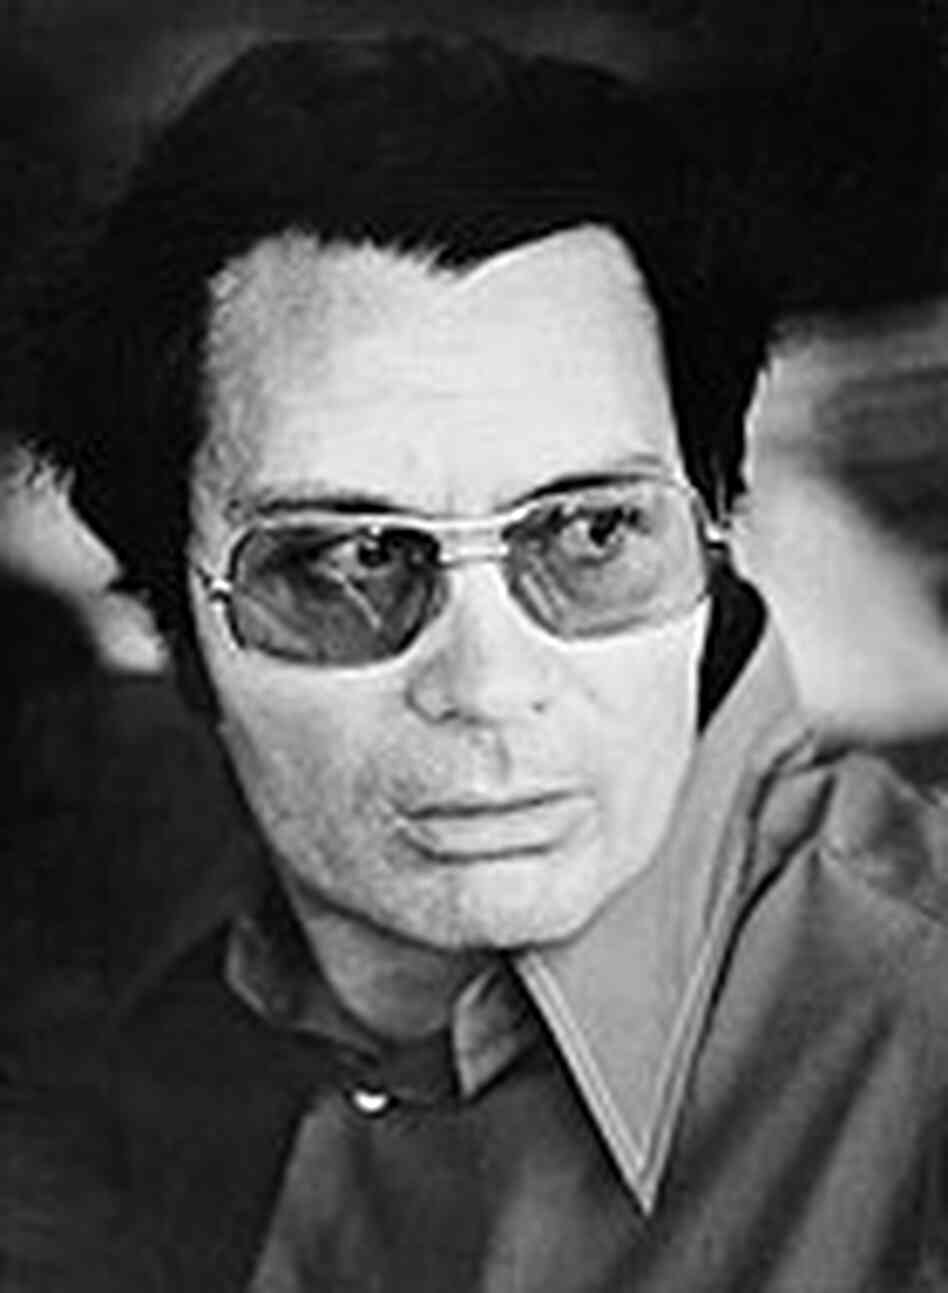 jonestown jewish personals Philip nobile (born 1942) is an american freelance writer , journalist , historian , teacher , and social critic/commentator he has written or edited several books, published investigative journalism in leading newspapers and journals, and taught since 2001 at the cobble hill school of american studies, a public school in brooklyn.